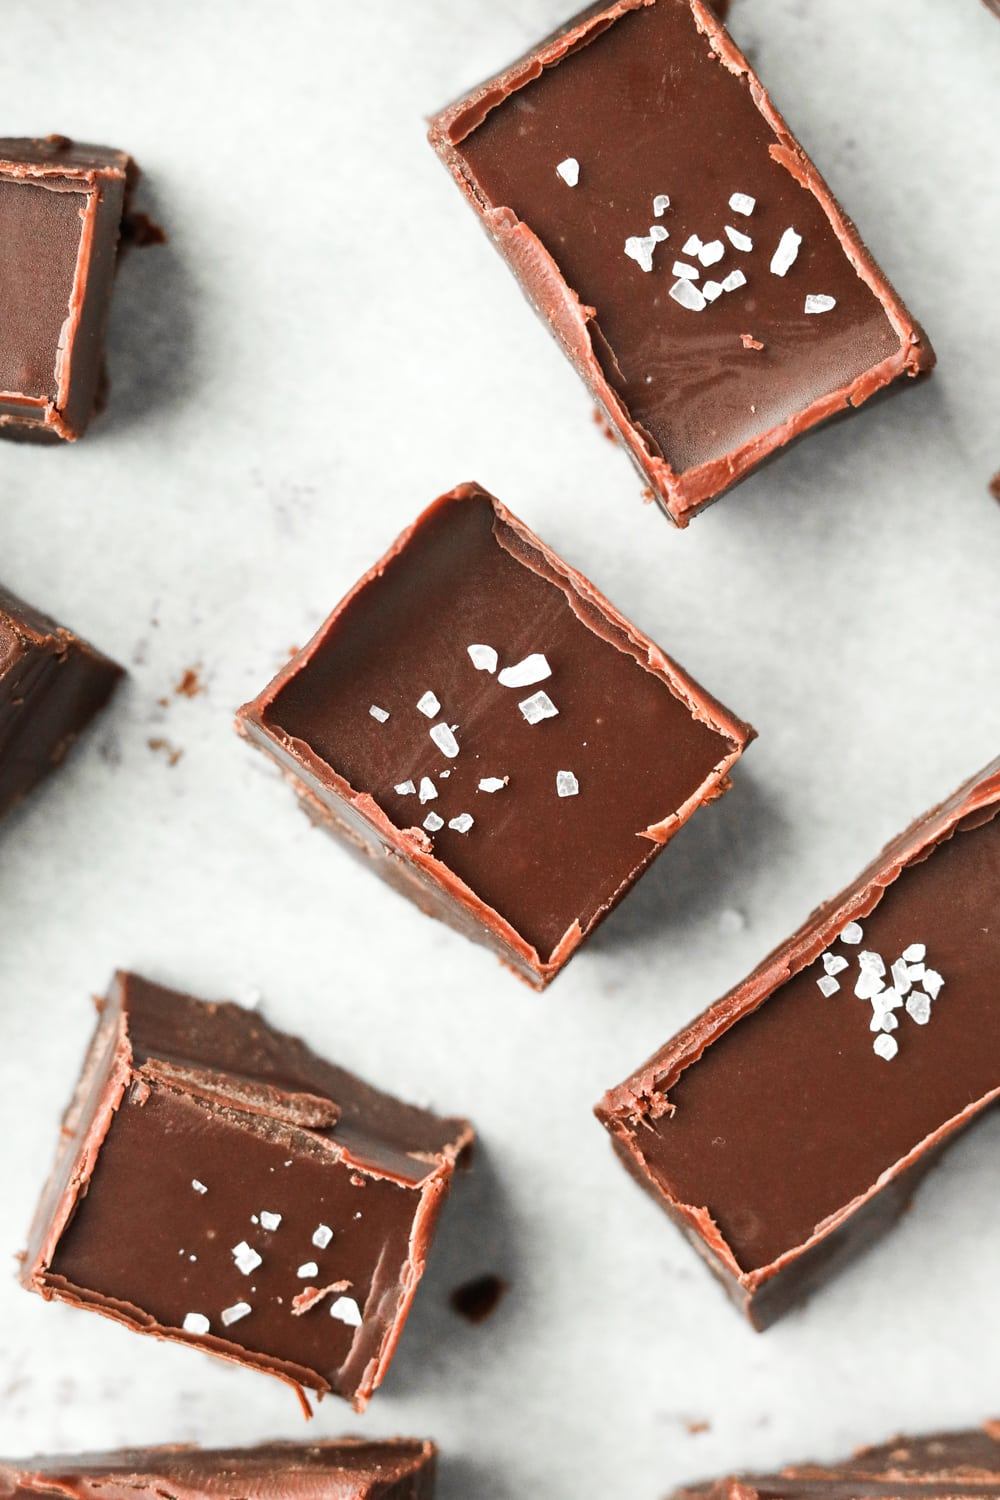 Pieces of chocolate fudge on a sheet of white parchment paper.